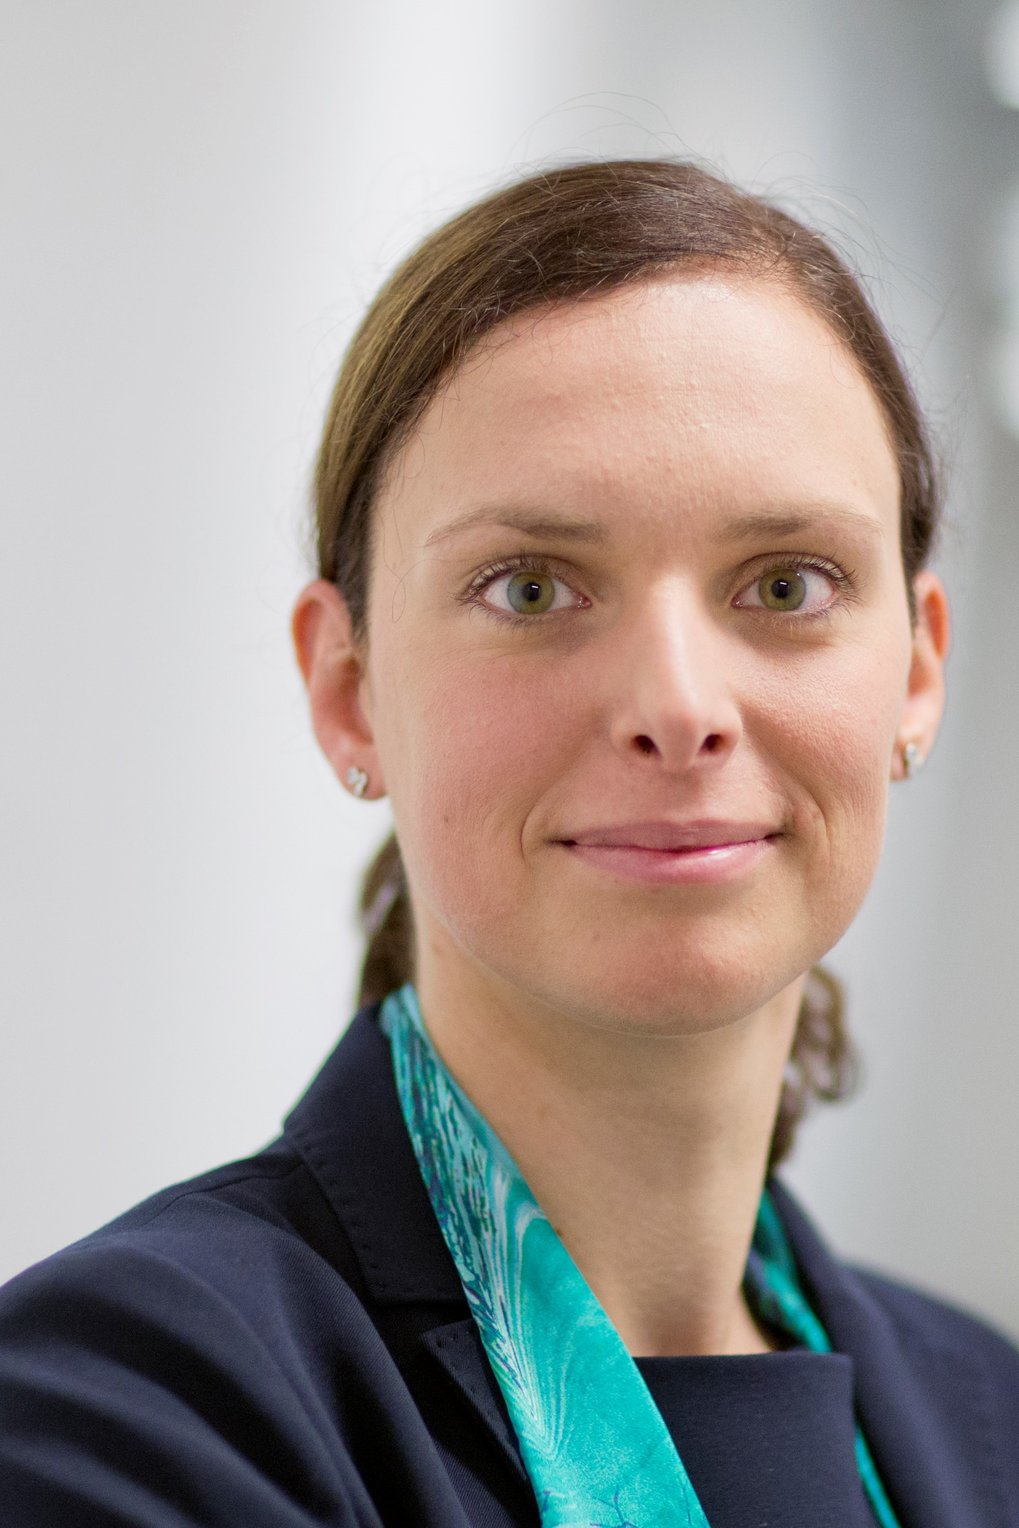 <p>Prof. Dr. Stefanie Barz<br /> Institute for Functional Matter an Quantum Technologies, University of Stuttgart<br /><br />Integrated Quantum Optics and Quantum Information</p>